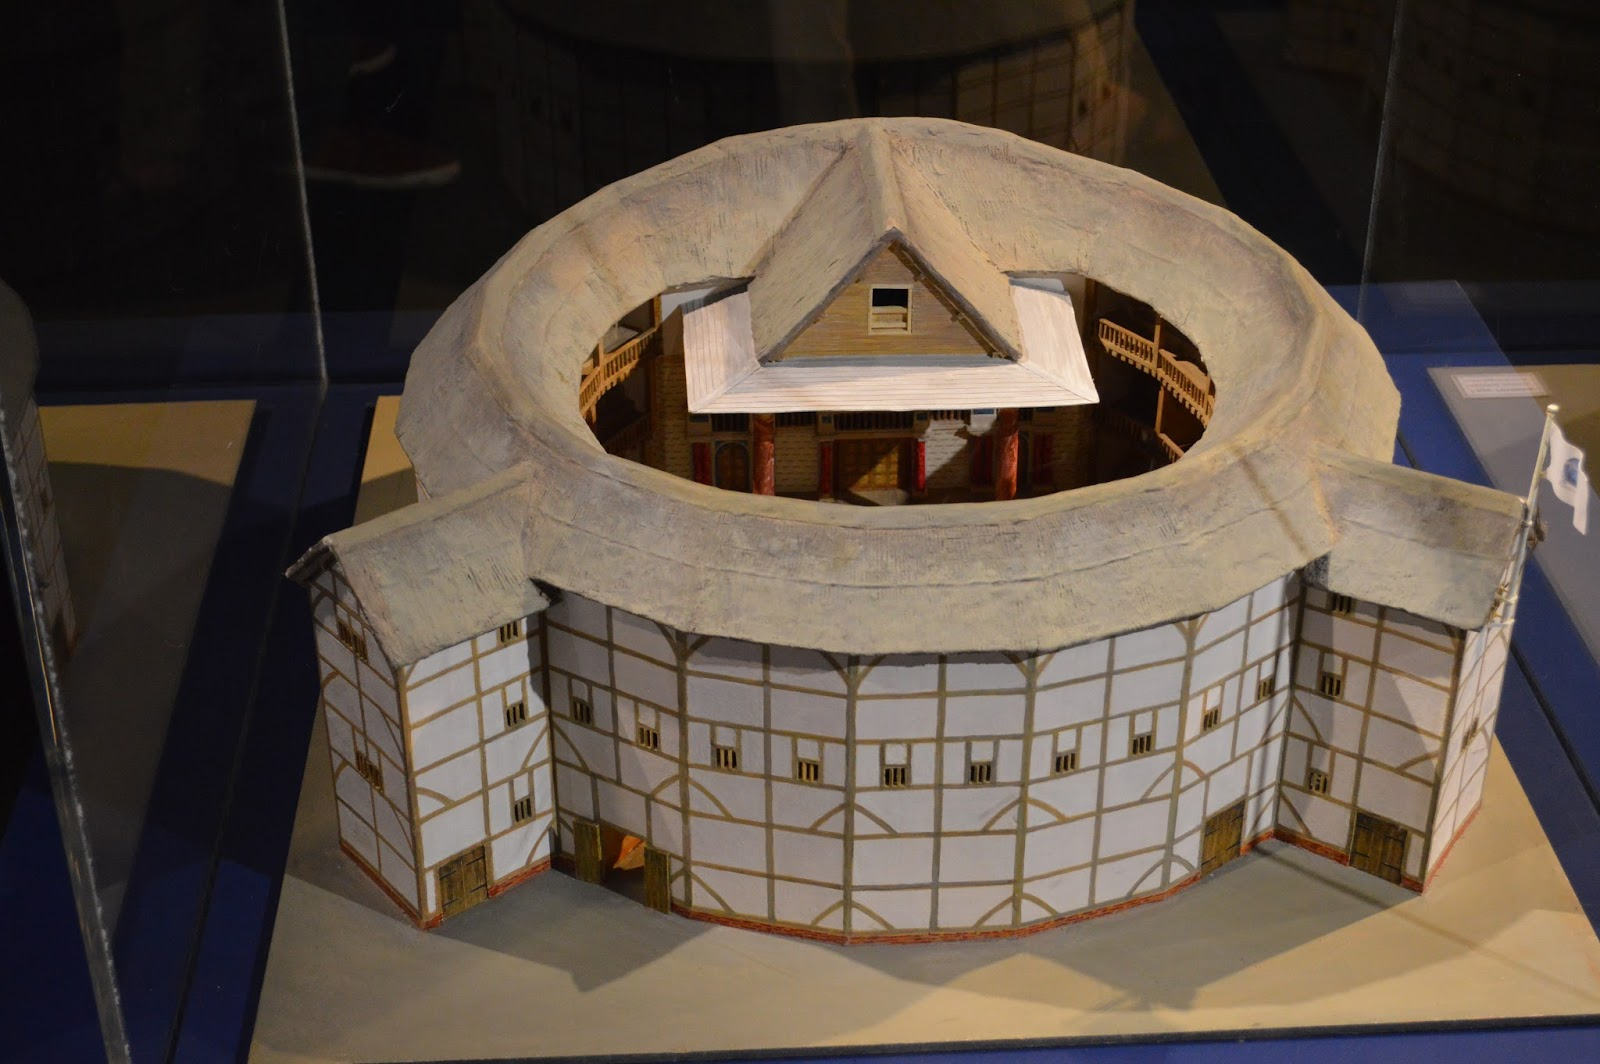 The Rebuilding Of Iconic Building Stems From Founding Shakespeares Globe